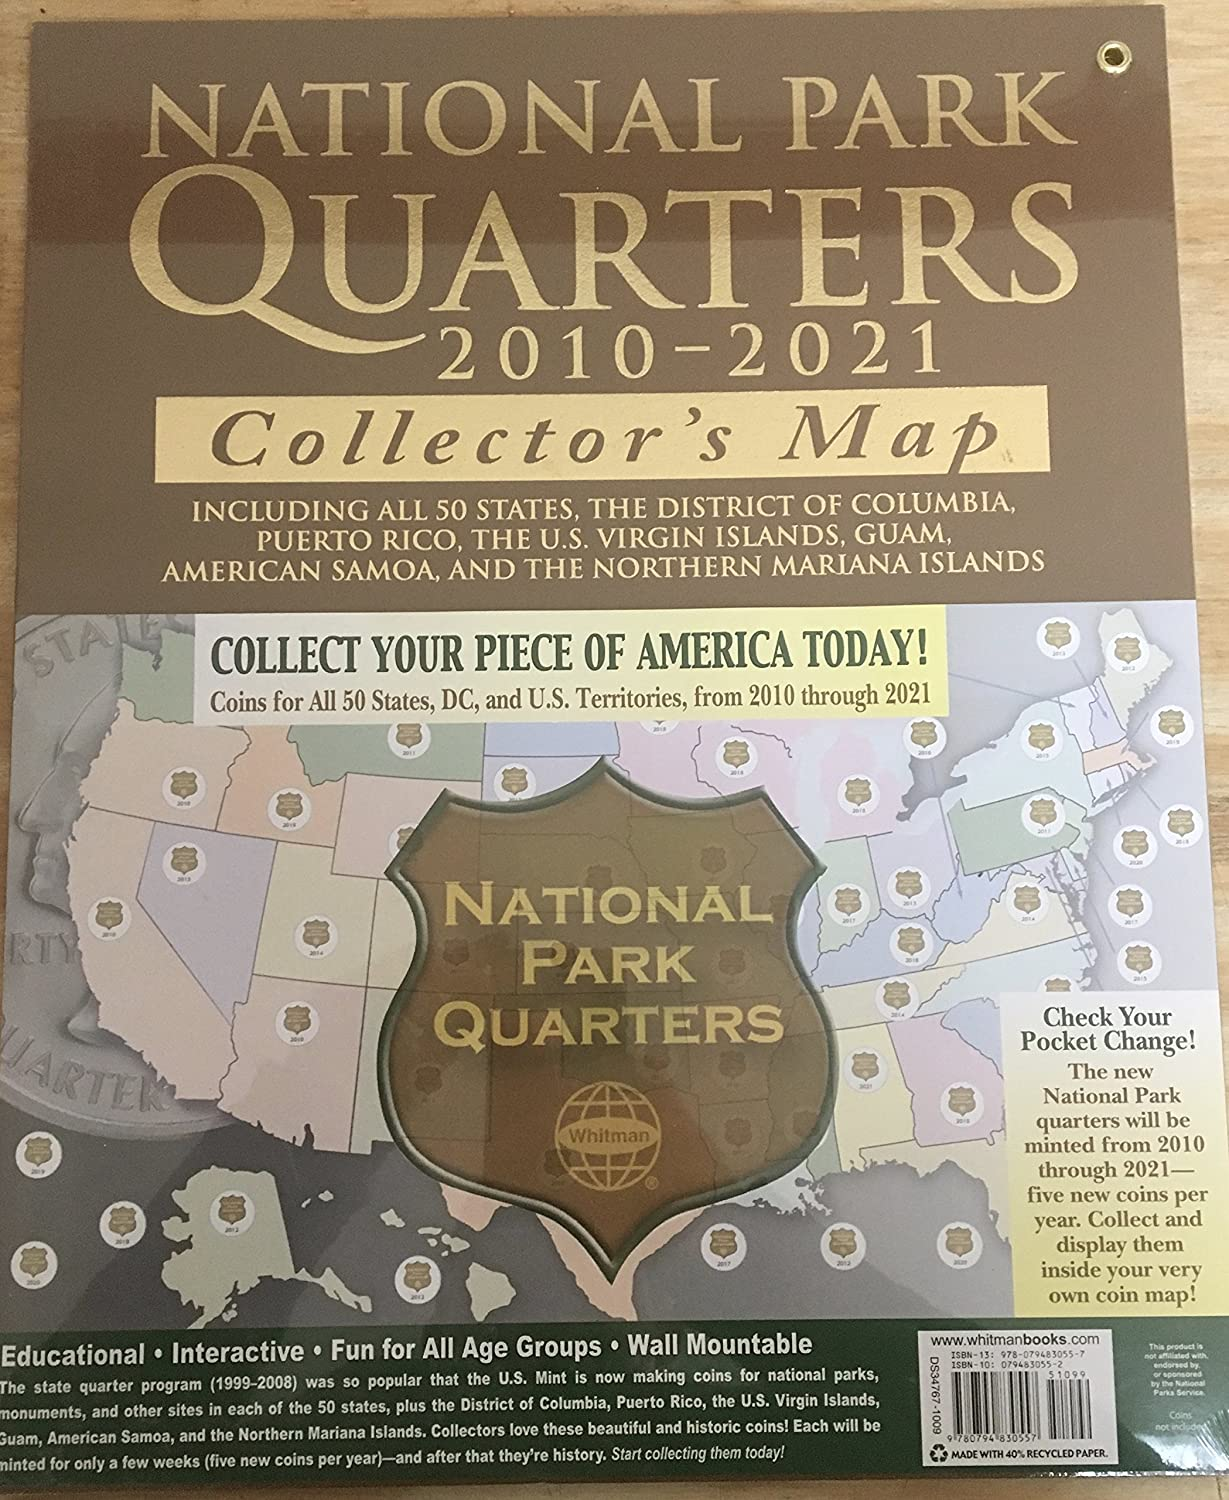 D National Park Quarters FREE GOLD COIN Includes Collectors - Us national park quarters book